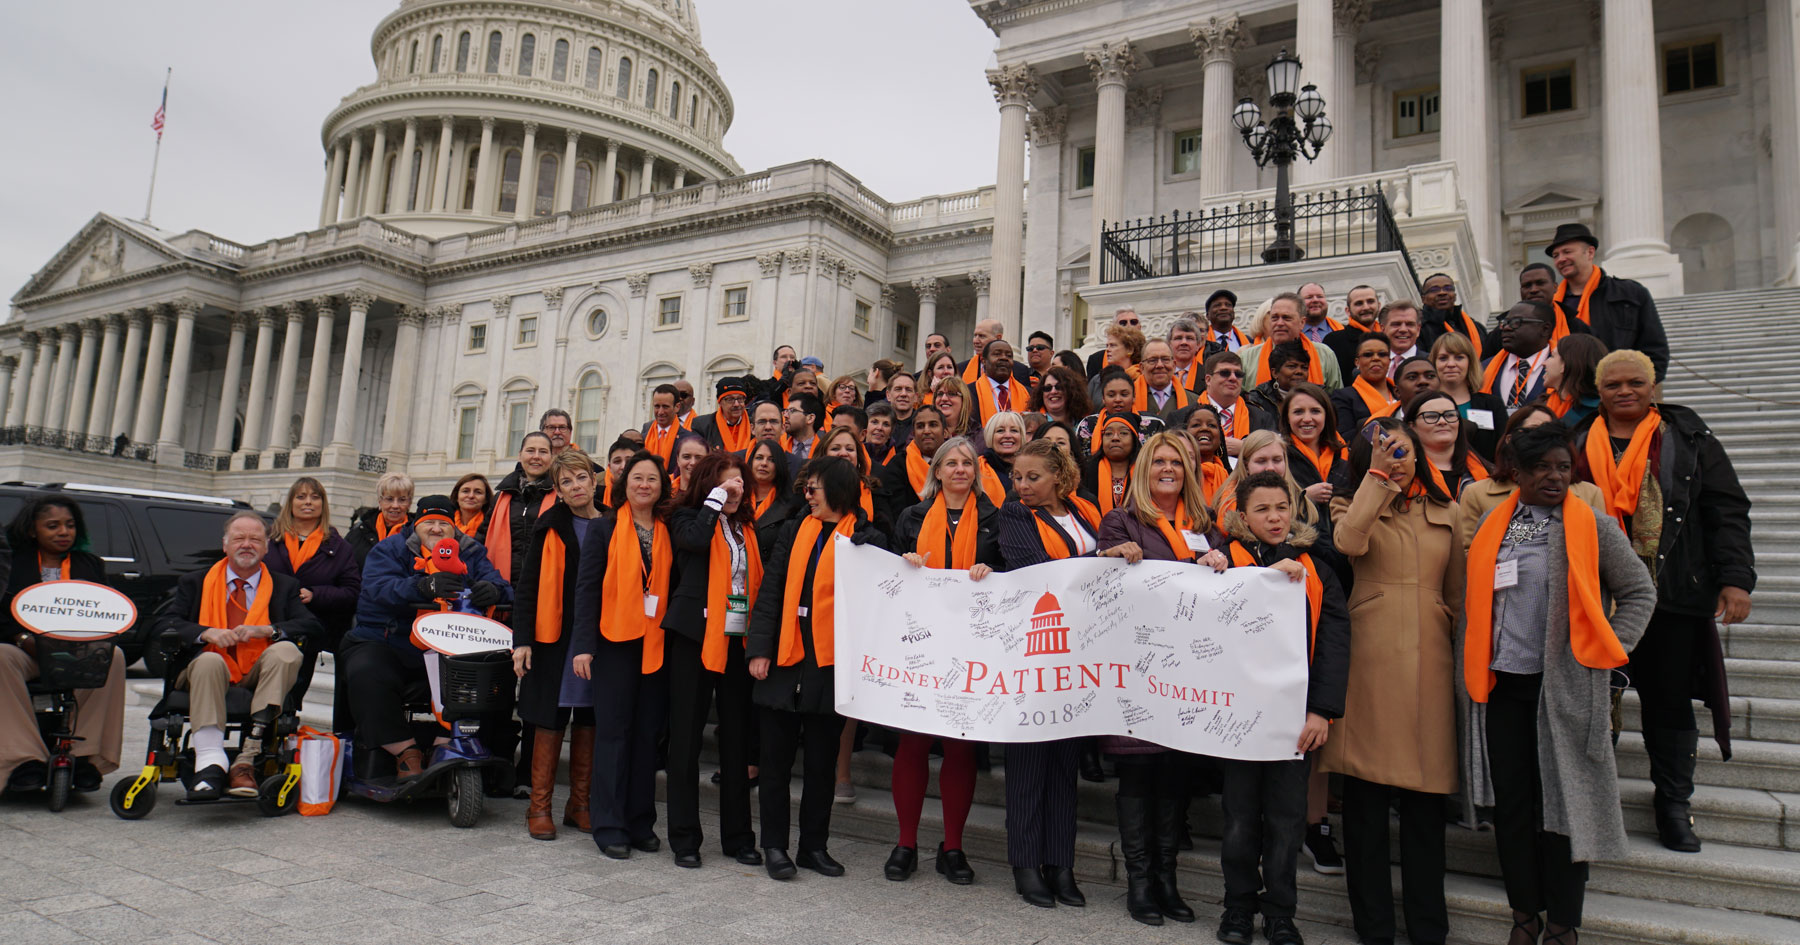 Kidney advocates on the steps of the US Capitol building